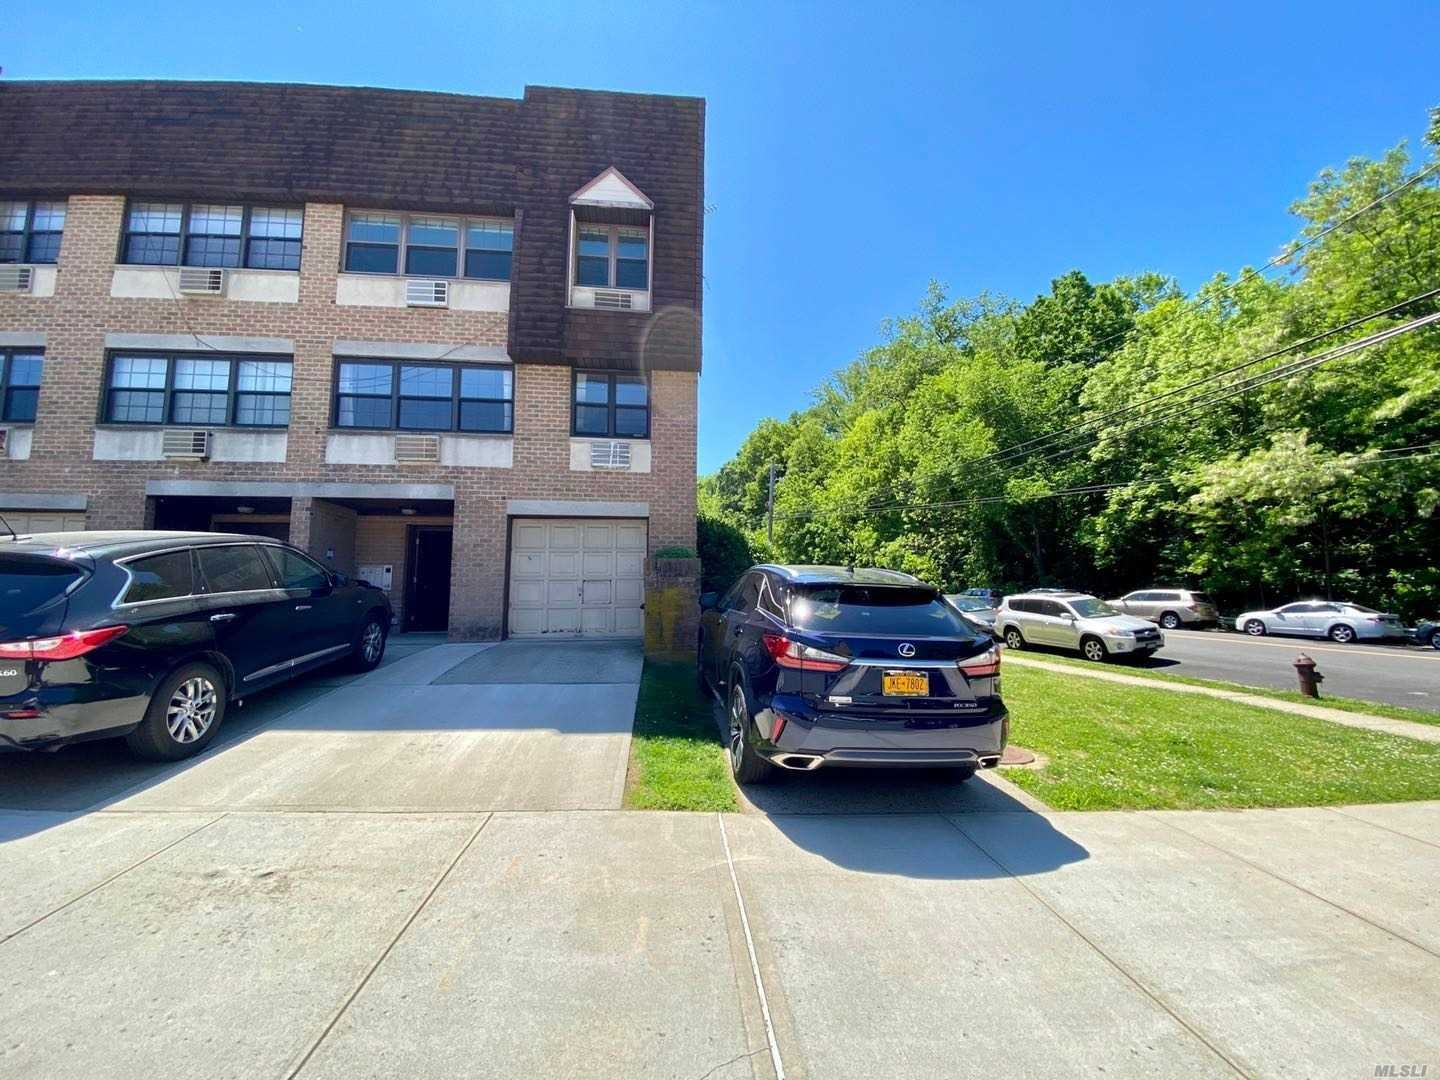 24002 70th Avenue #1C, Douglaston, NY 11362 - MLS#: 3218704